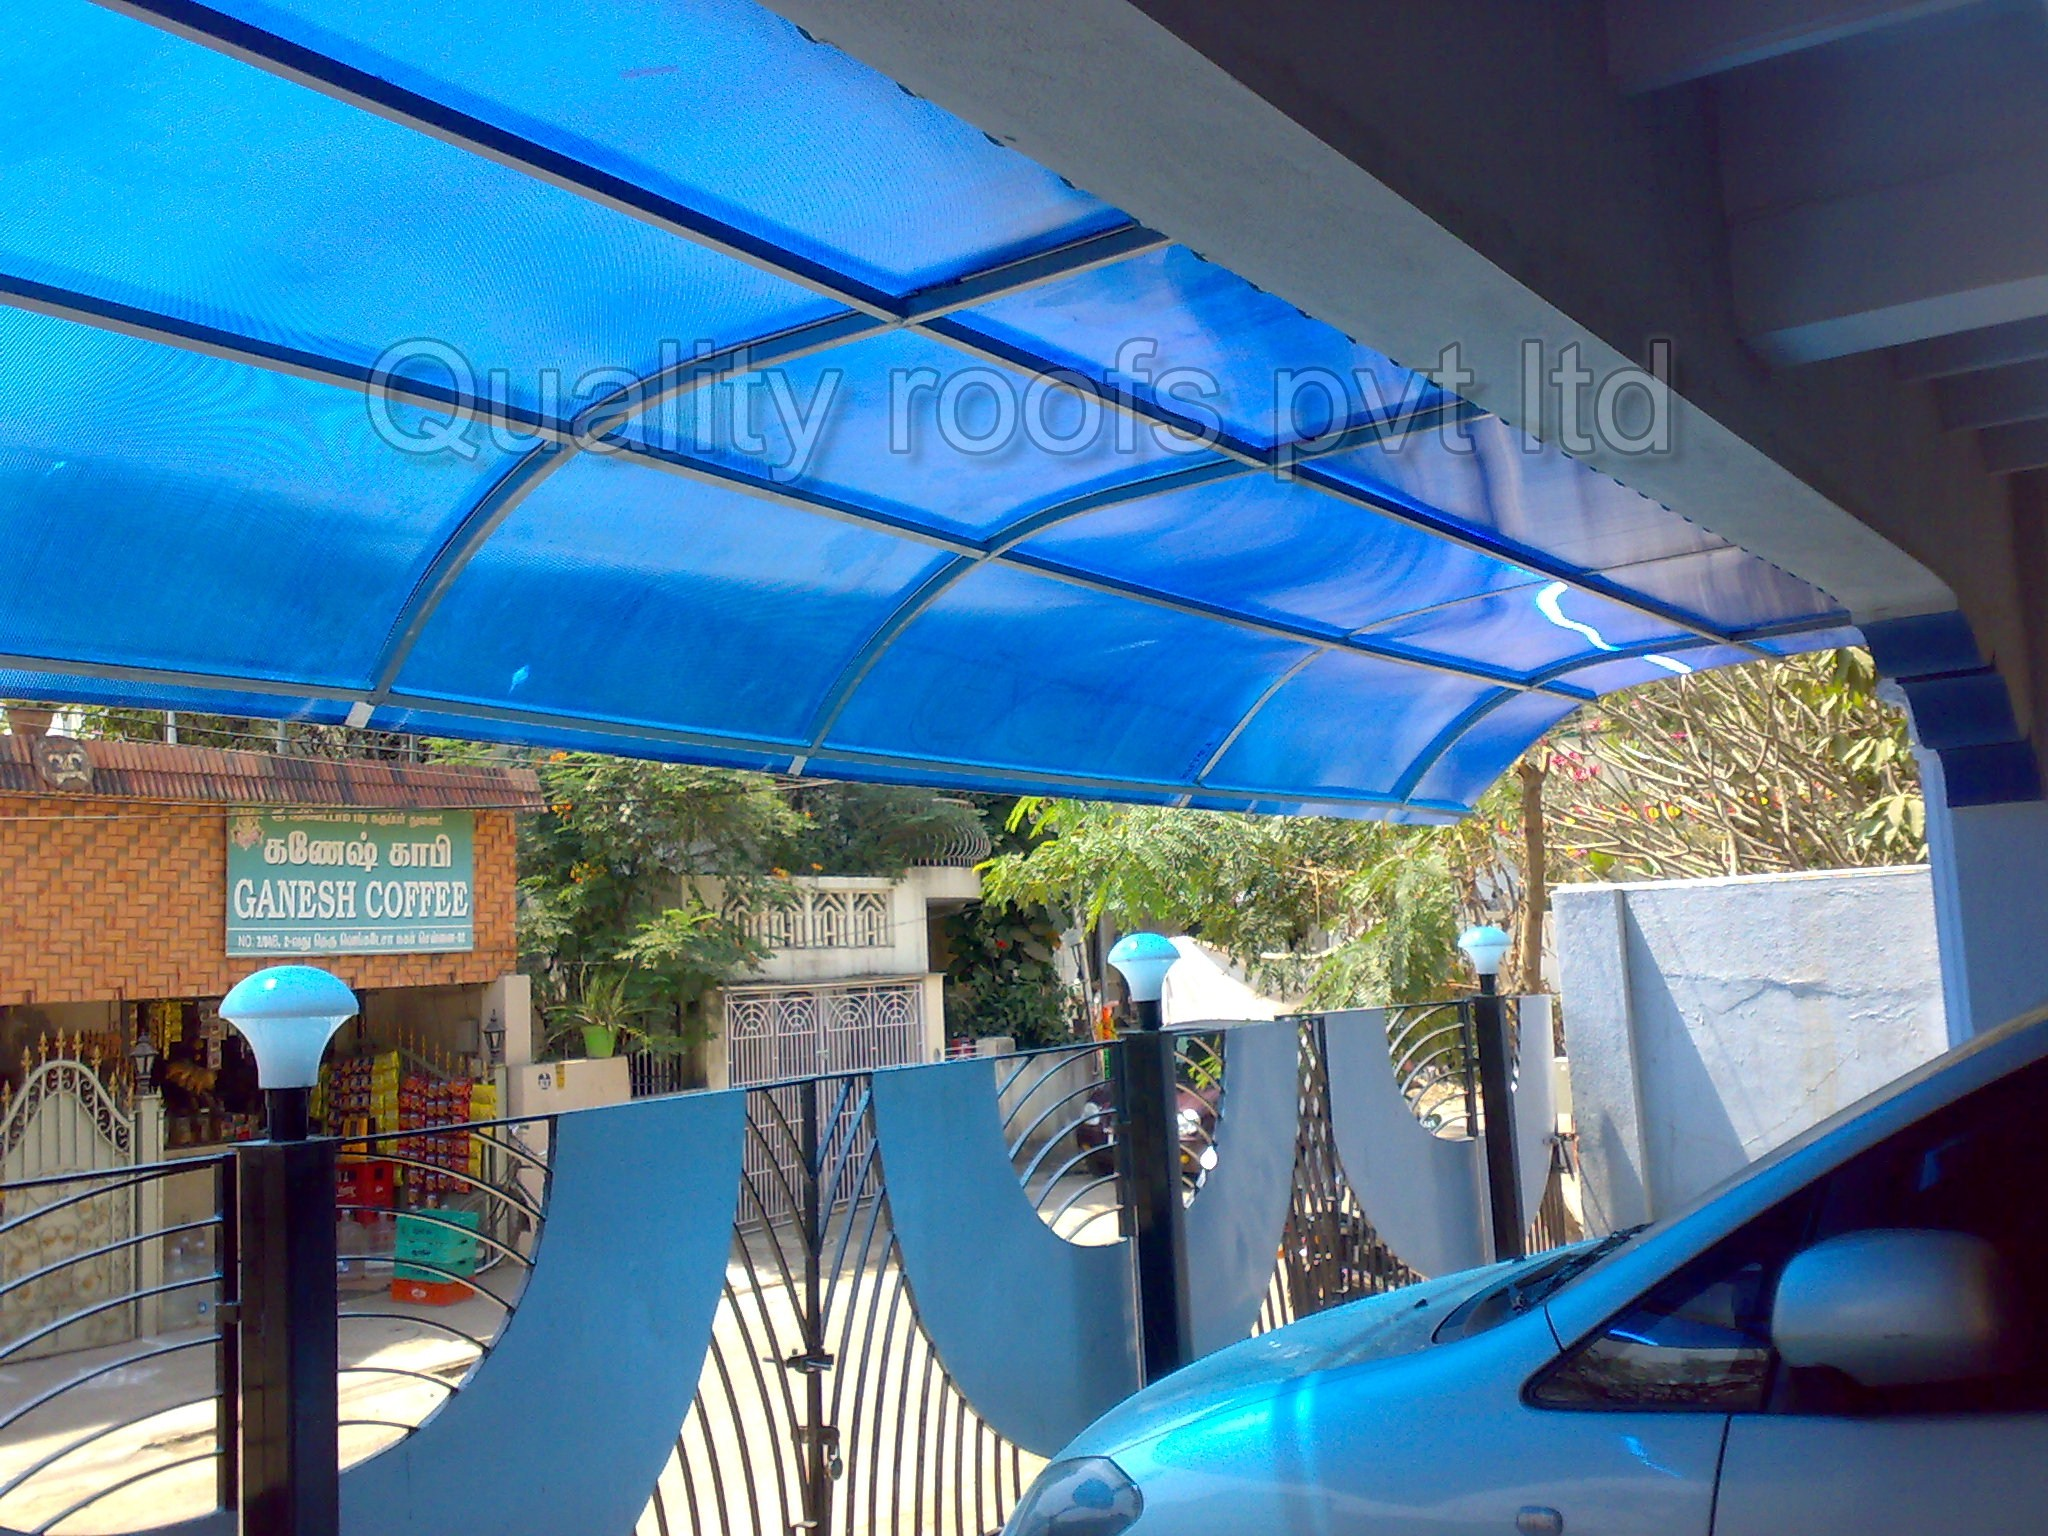 Polycarbonate Roofing Contractors  | Quality Roofs Pvt Ltd | Polycarbonate Roofing Contractors In Chennai,Polycarbonate Roofing Services In Chennai,Transparent Shed Work In Chennai,Polycarbonate Roofing In Chennai.Polyacarbonate Car Parking Roofing In Chennai - GL57382